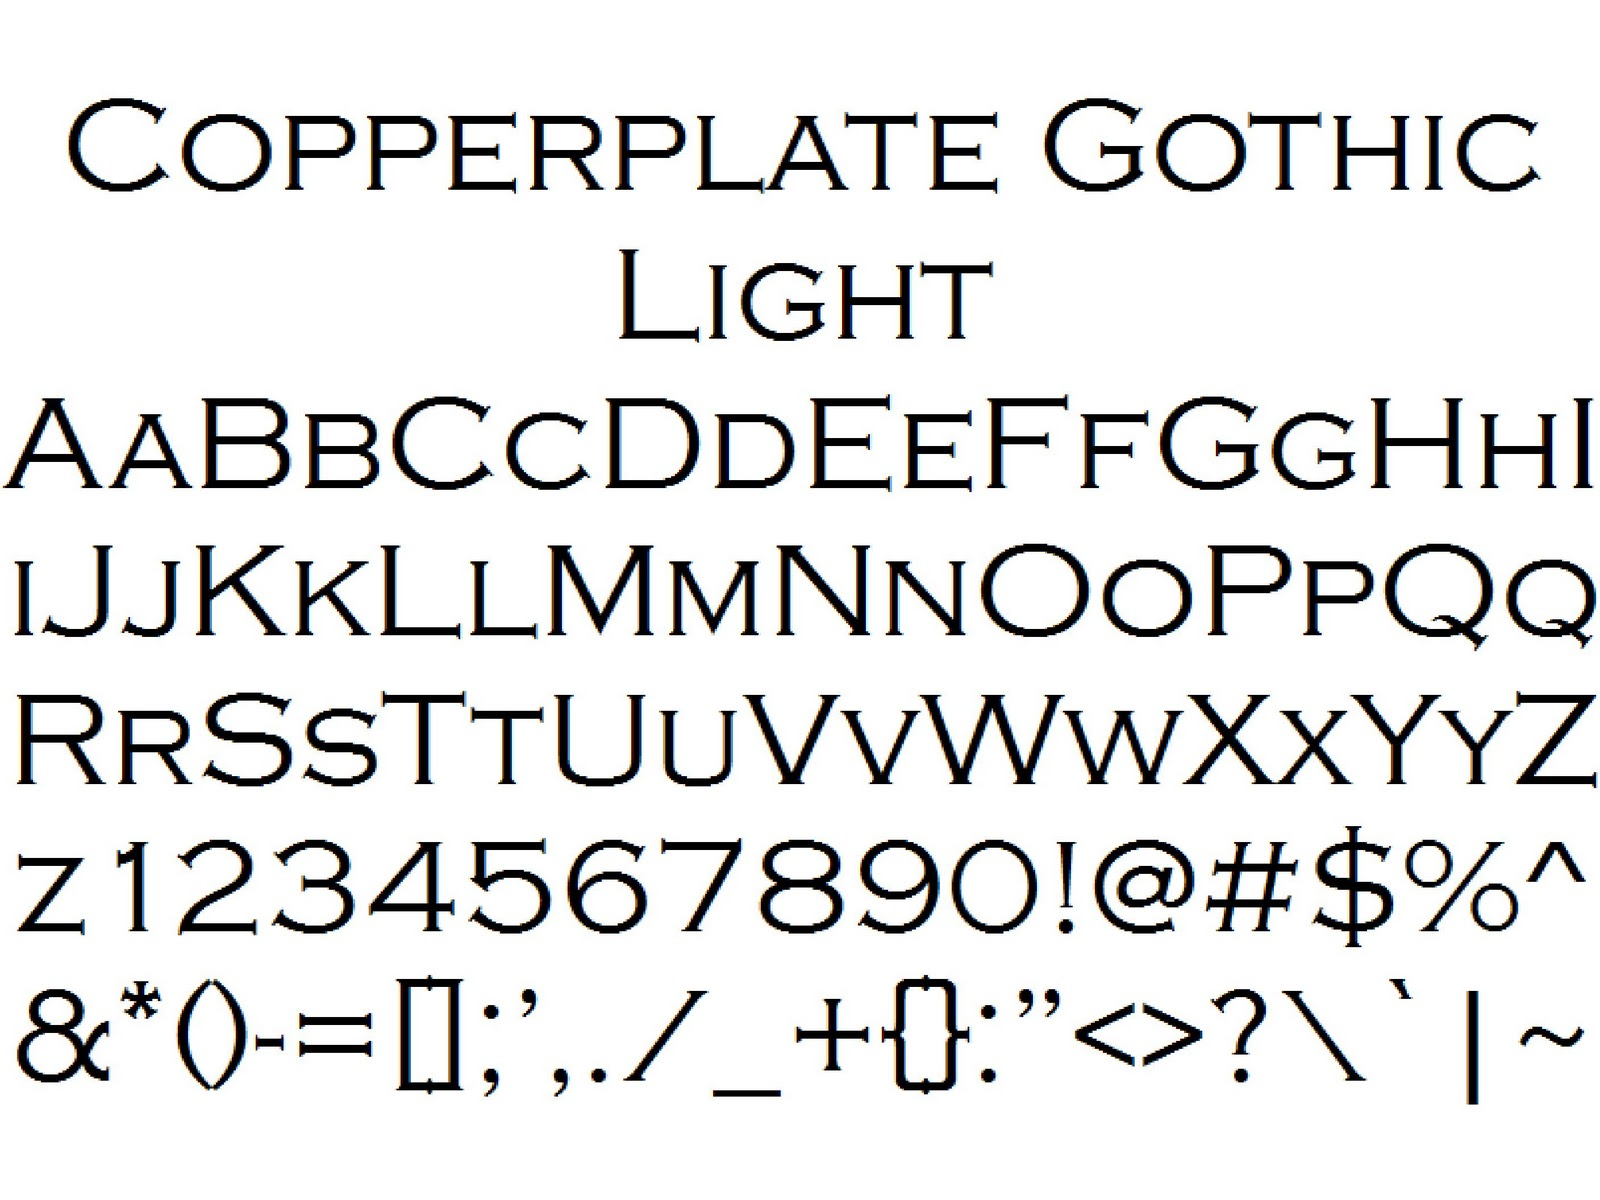 Font Alphabet Styles: Copperplate Gothic Light